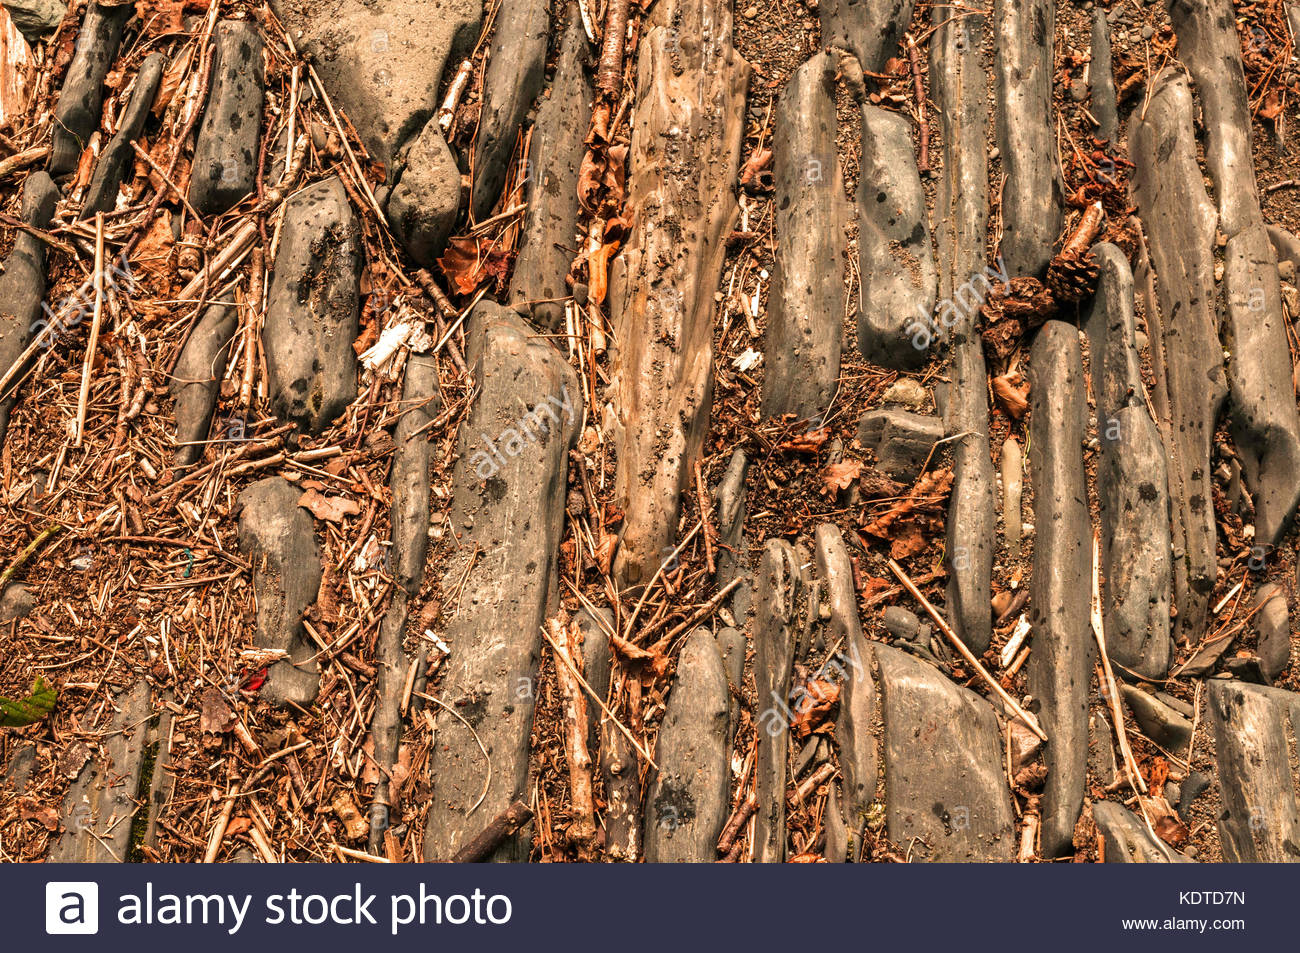 Stony Forest ground with leaves and twigs textured background 1300x953